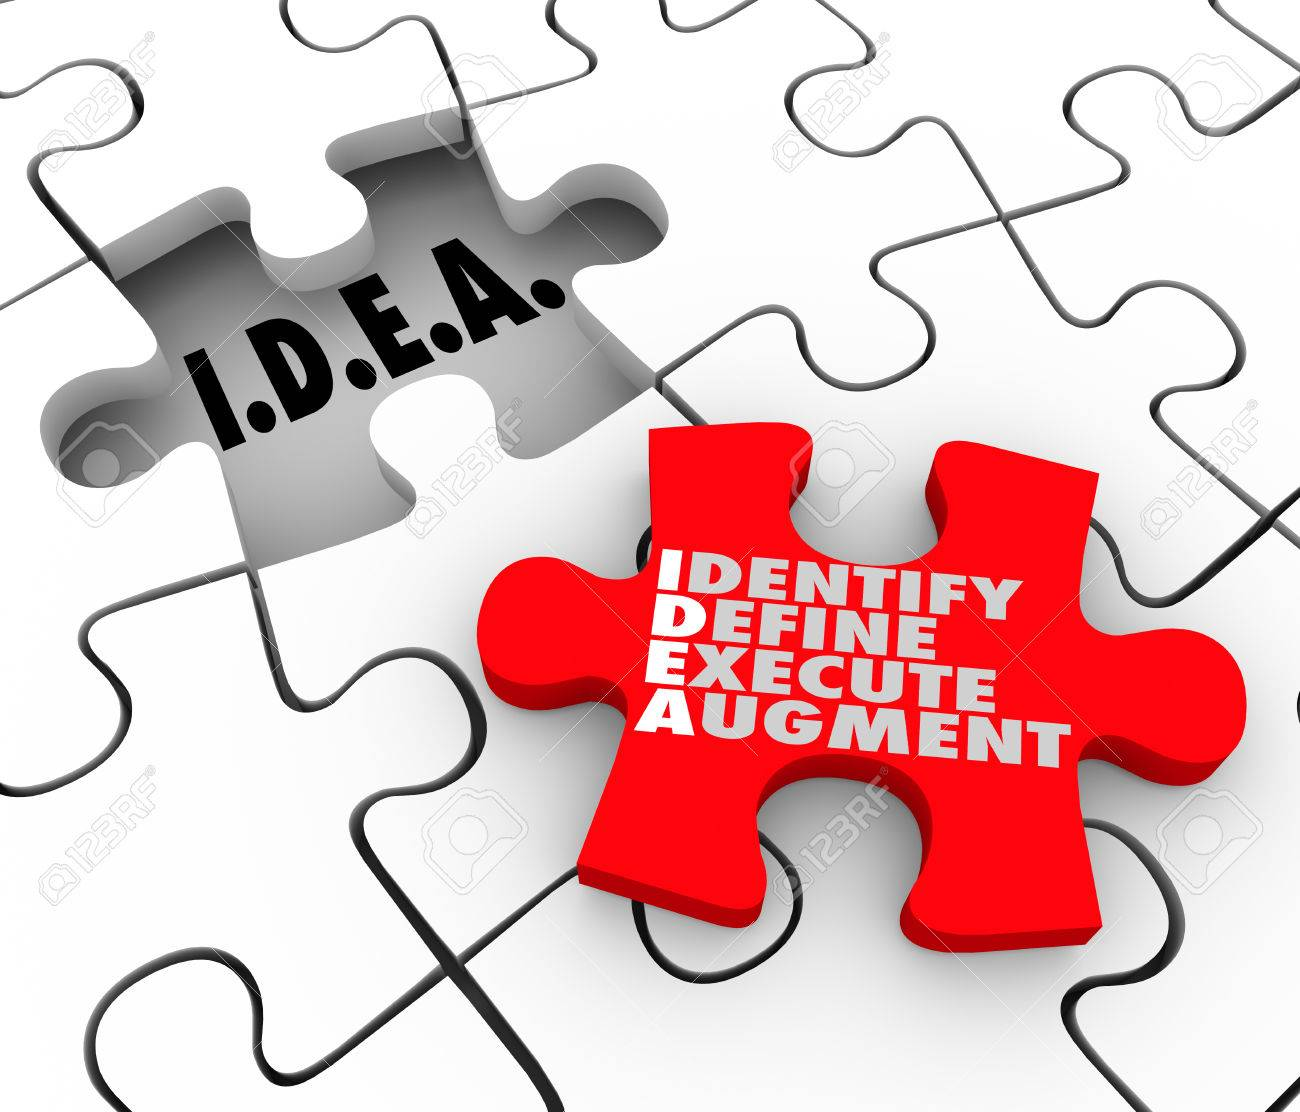 idea acronym meaning identify define execute agument words on idea acronym meaning identify define execute agument words on a puzzle piece for diagnosing and solving